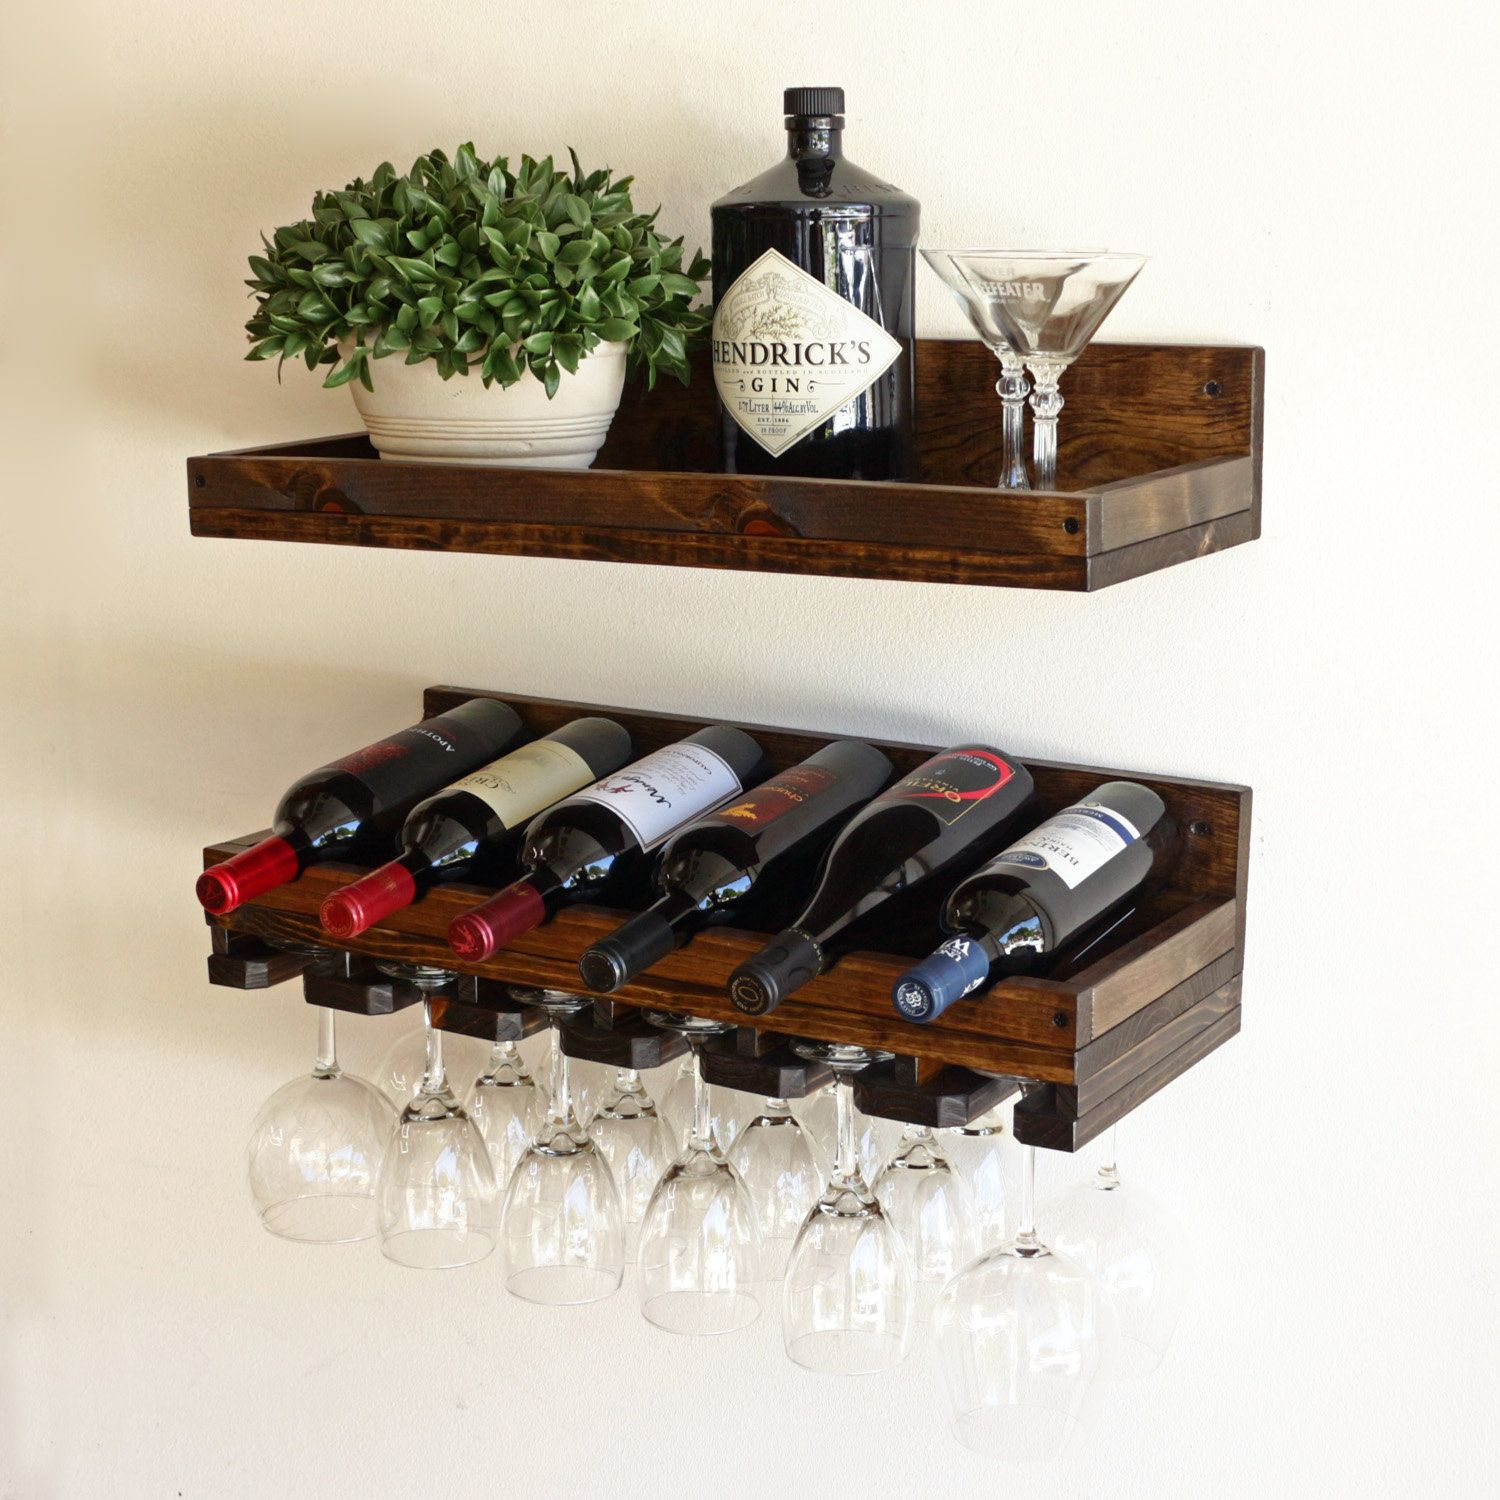 Rustic Wood Wine Rack Wall Mounted Shelf With Hanging Etsy In 2020 Wine Rack Wall Wine Bottle Shelf Wood Wine Racks